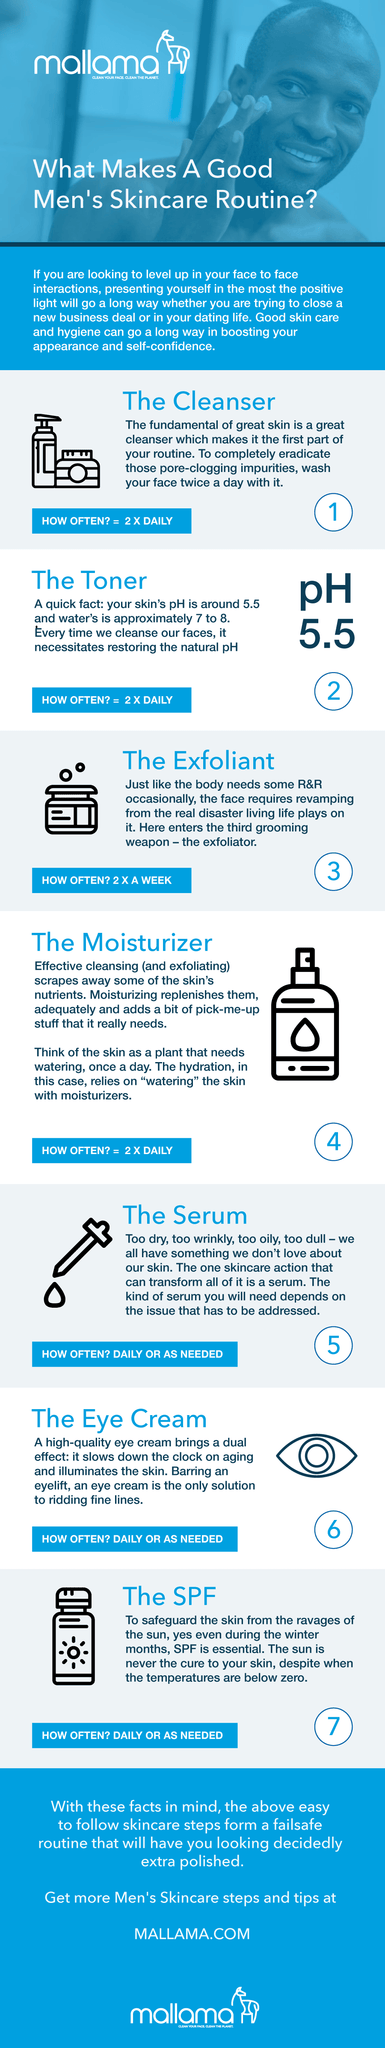 Infographic - What Makes a Ultimate Skincare Routine? Following 7 Simple Grooming Steps